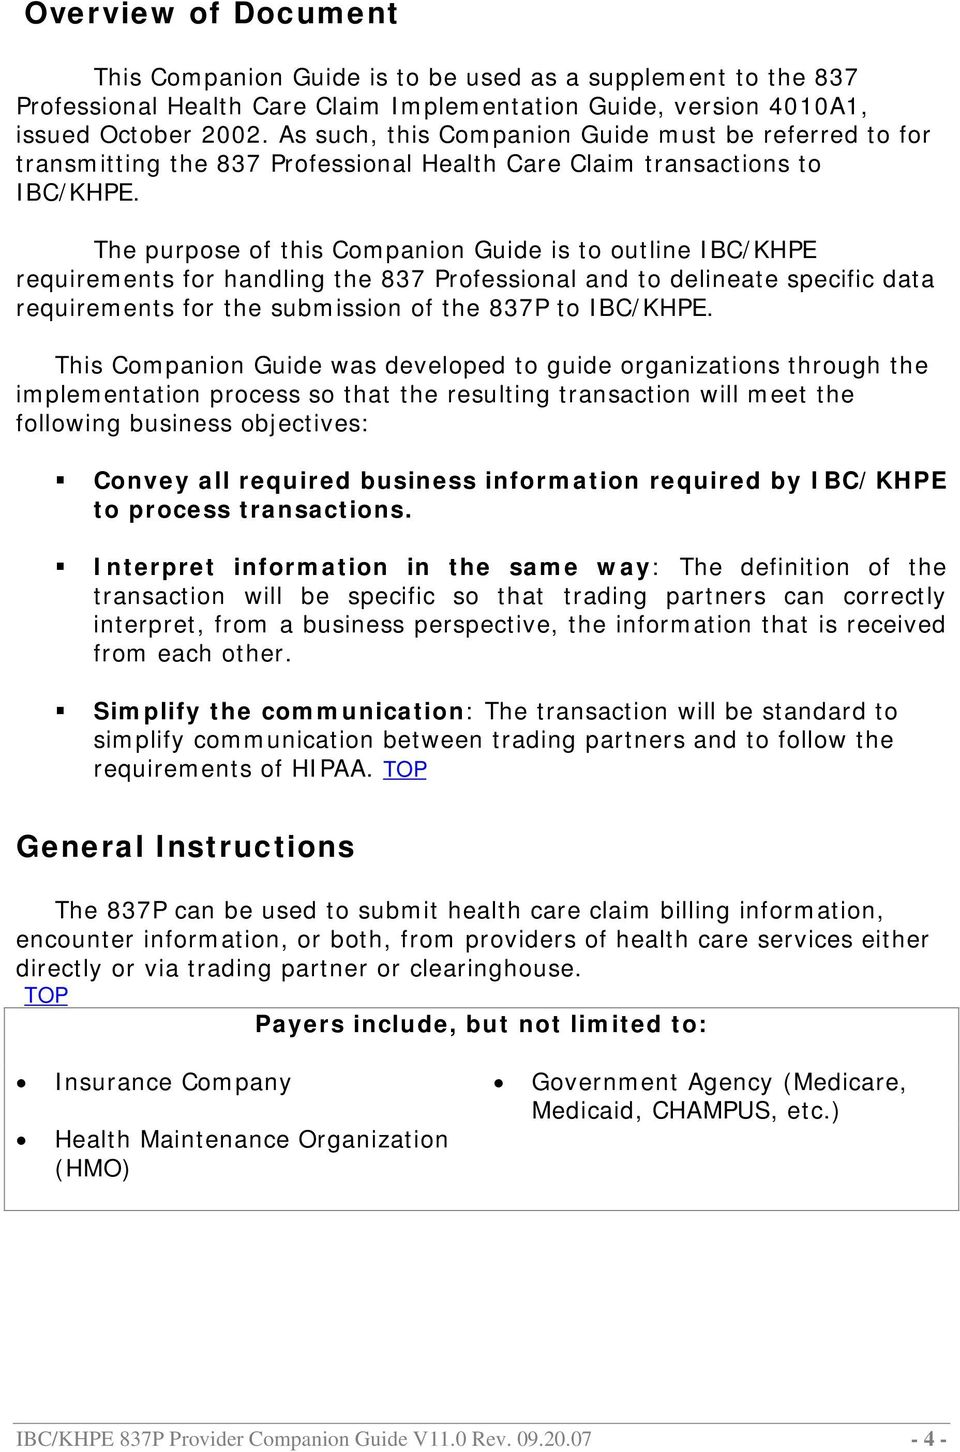 The purpose of this Companion Guide is to outline IBC/KHPE requirements for handling the 837 Professional and to delineate specific data requirements for the submission of the 837P to IBC/KHPE.